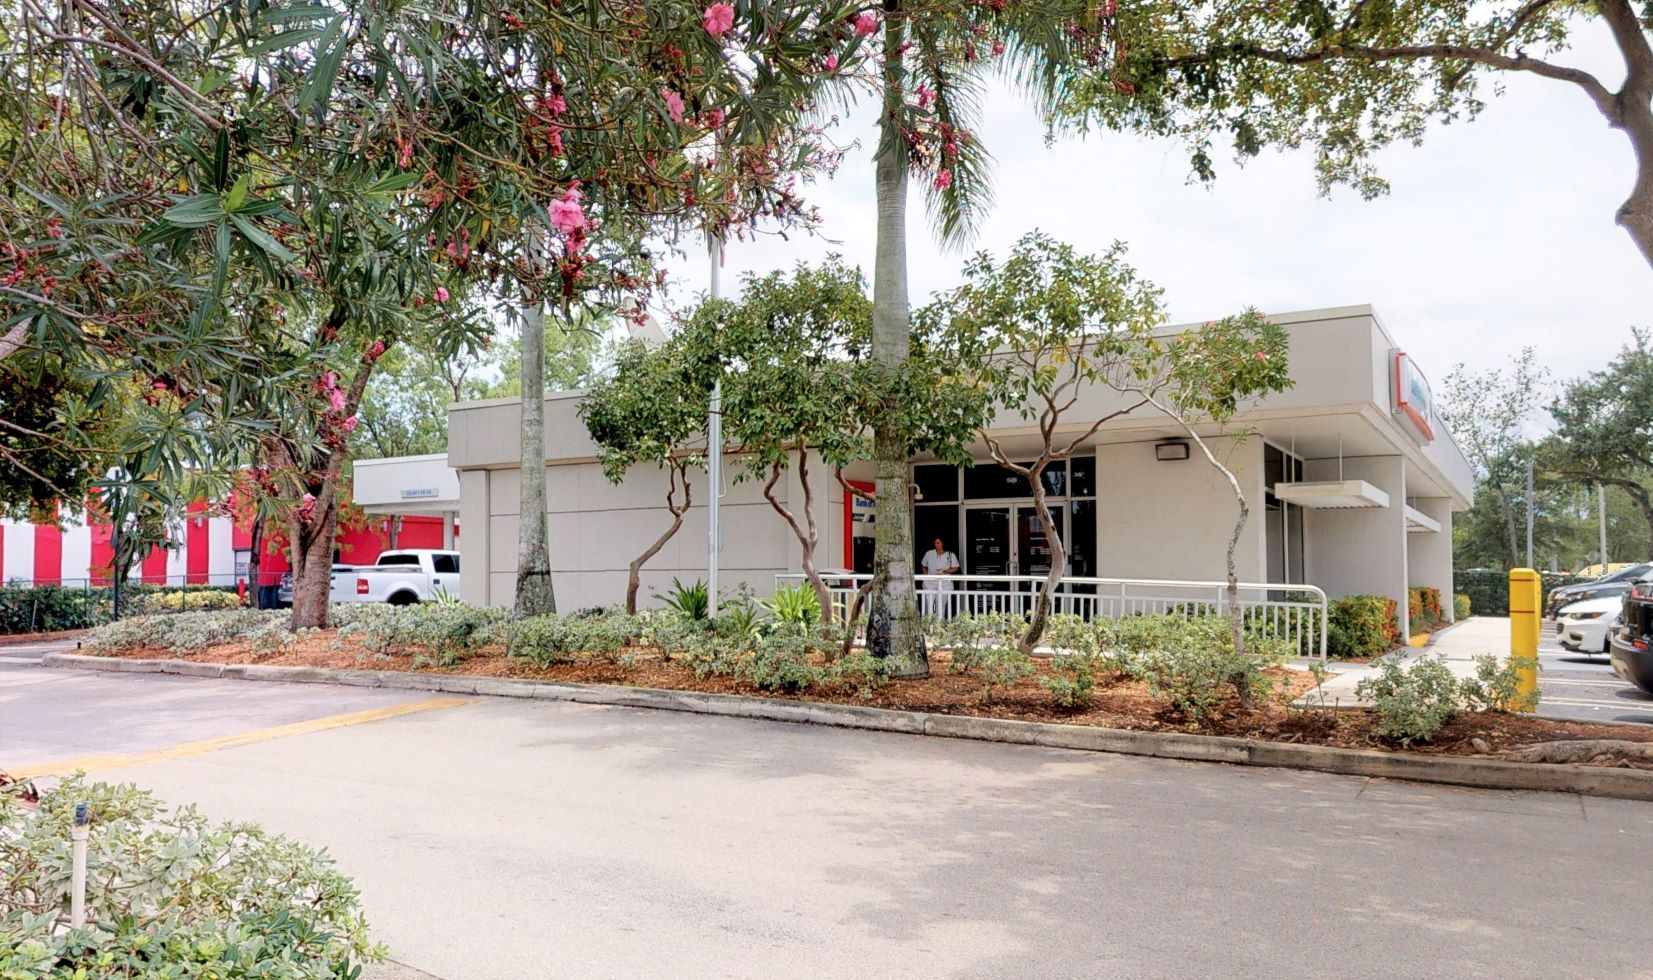 Bank of America financial center with walk-up ATM | 15400 NW 77th Ct, Hialeah, FL 33016